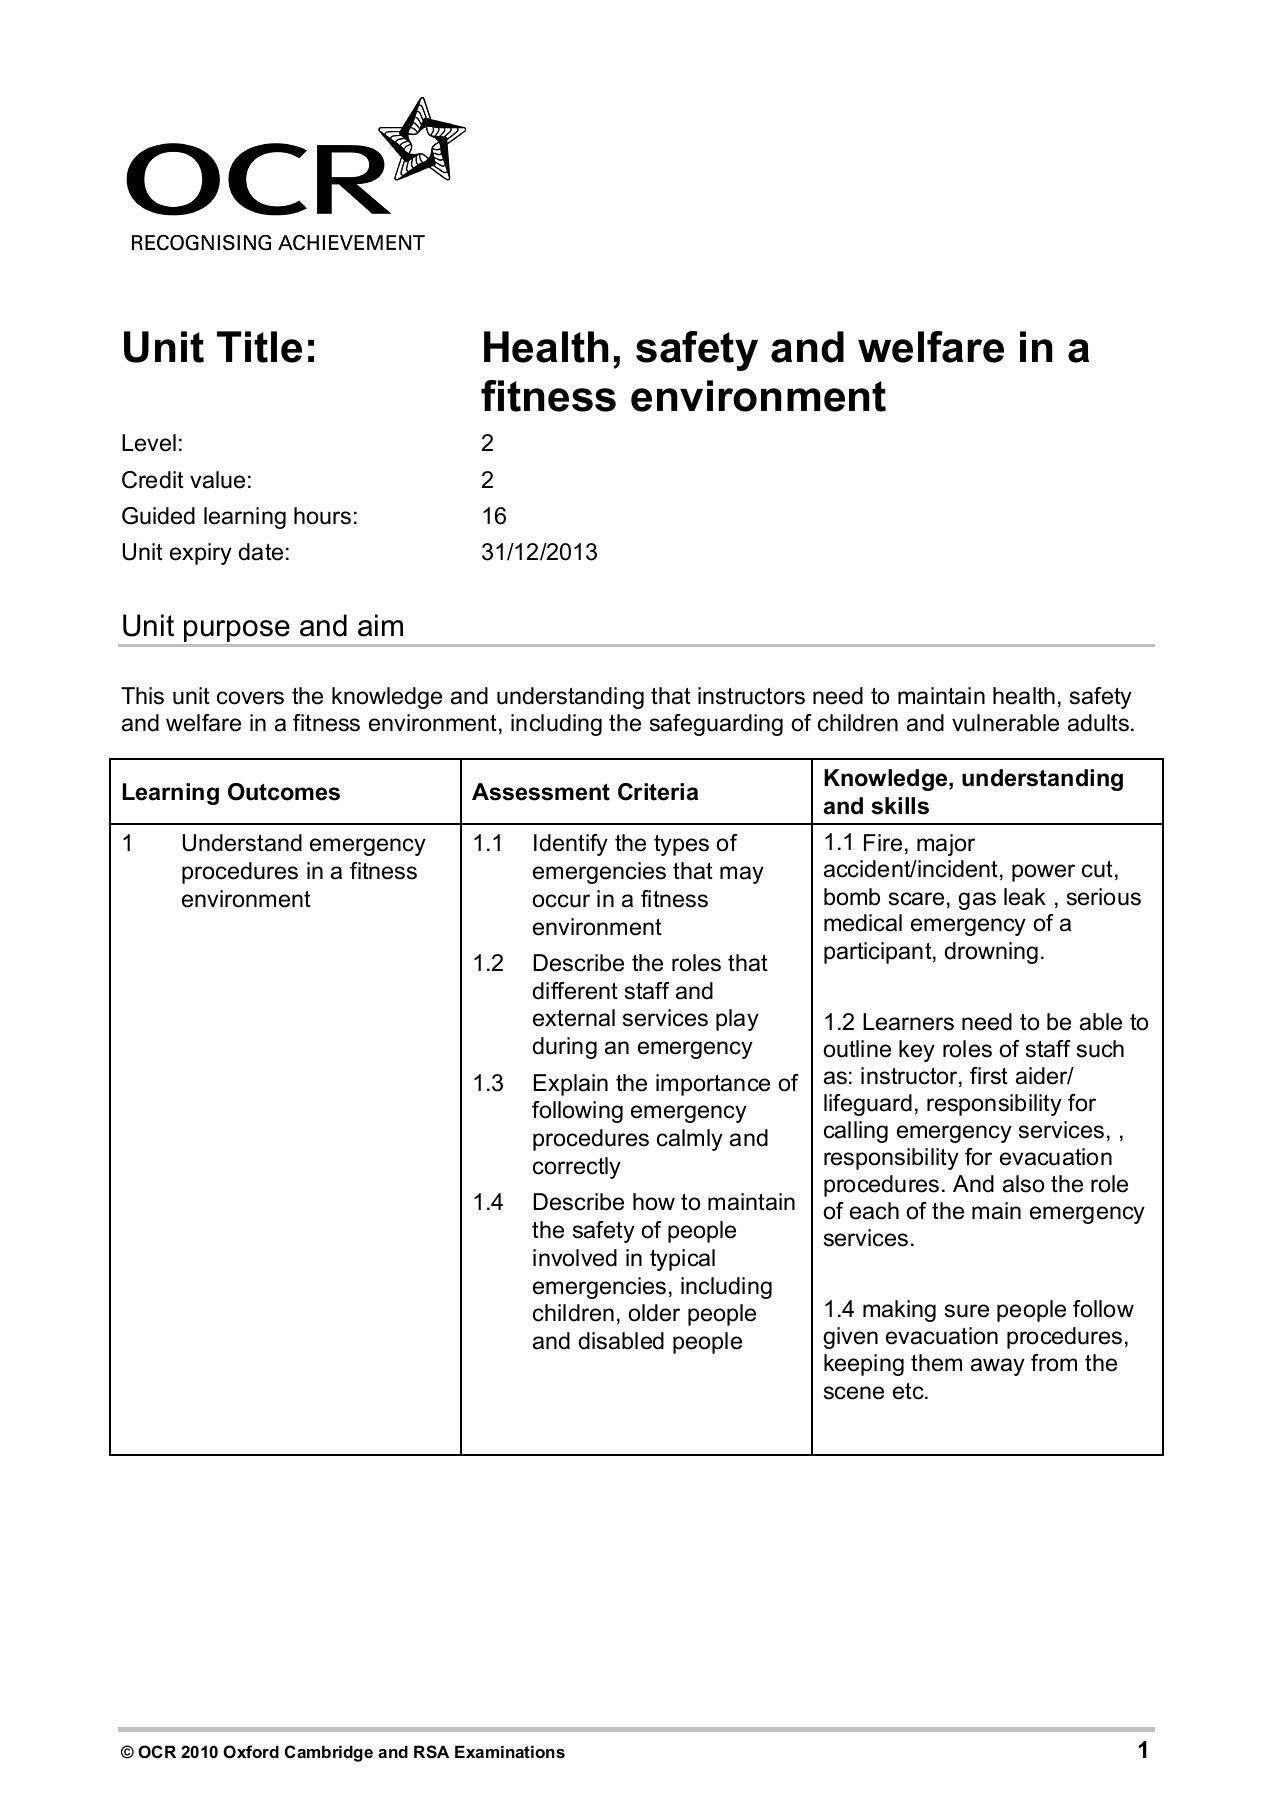 Unit Title Health Safety And Welfare In A Fitness